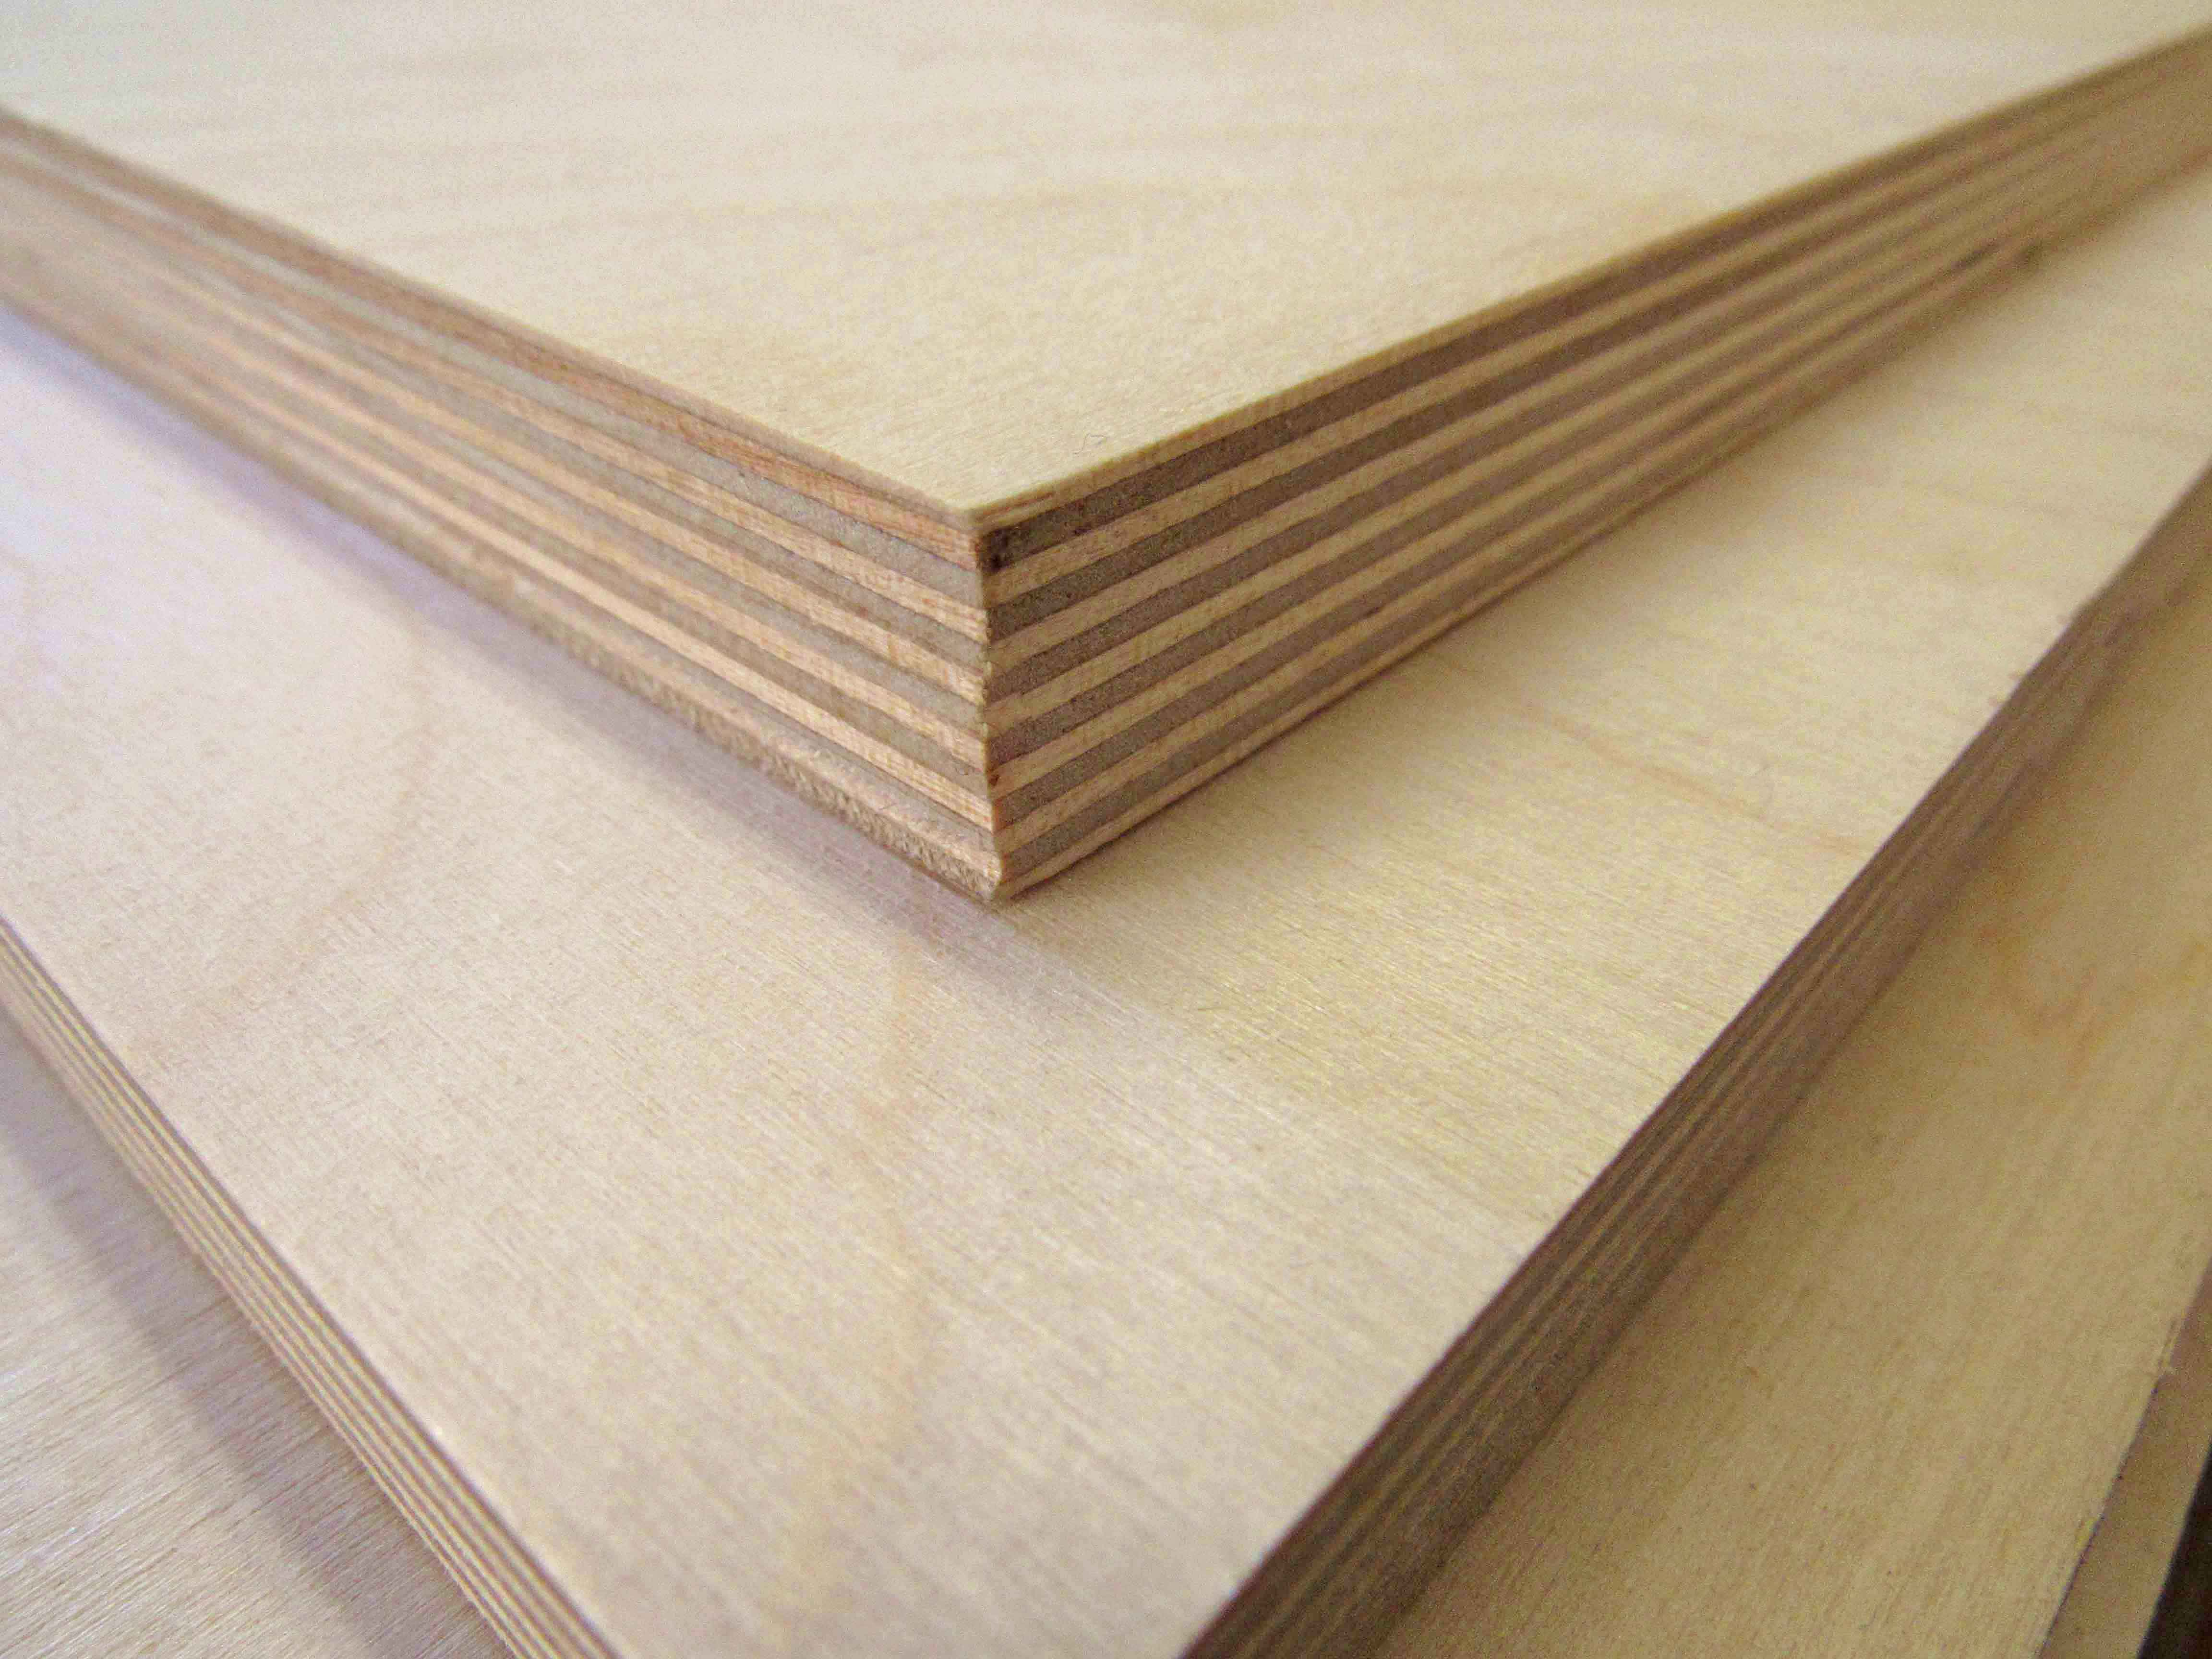 Exterior Grade Plywood Sheathing Thickness Guide To - Panel Contrachapado